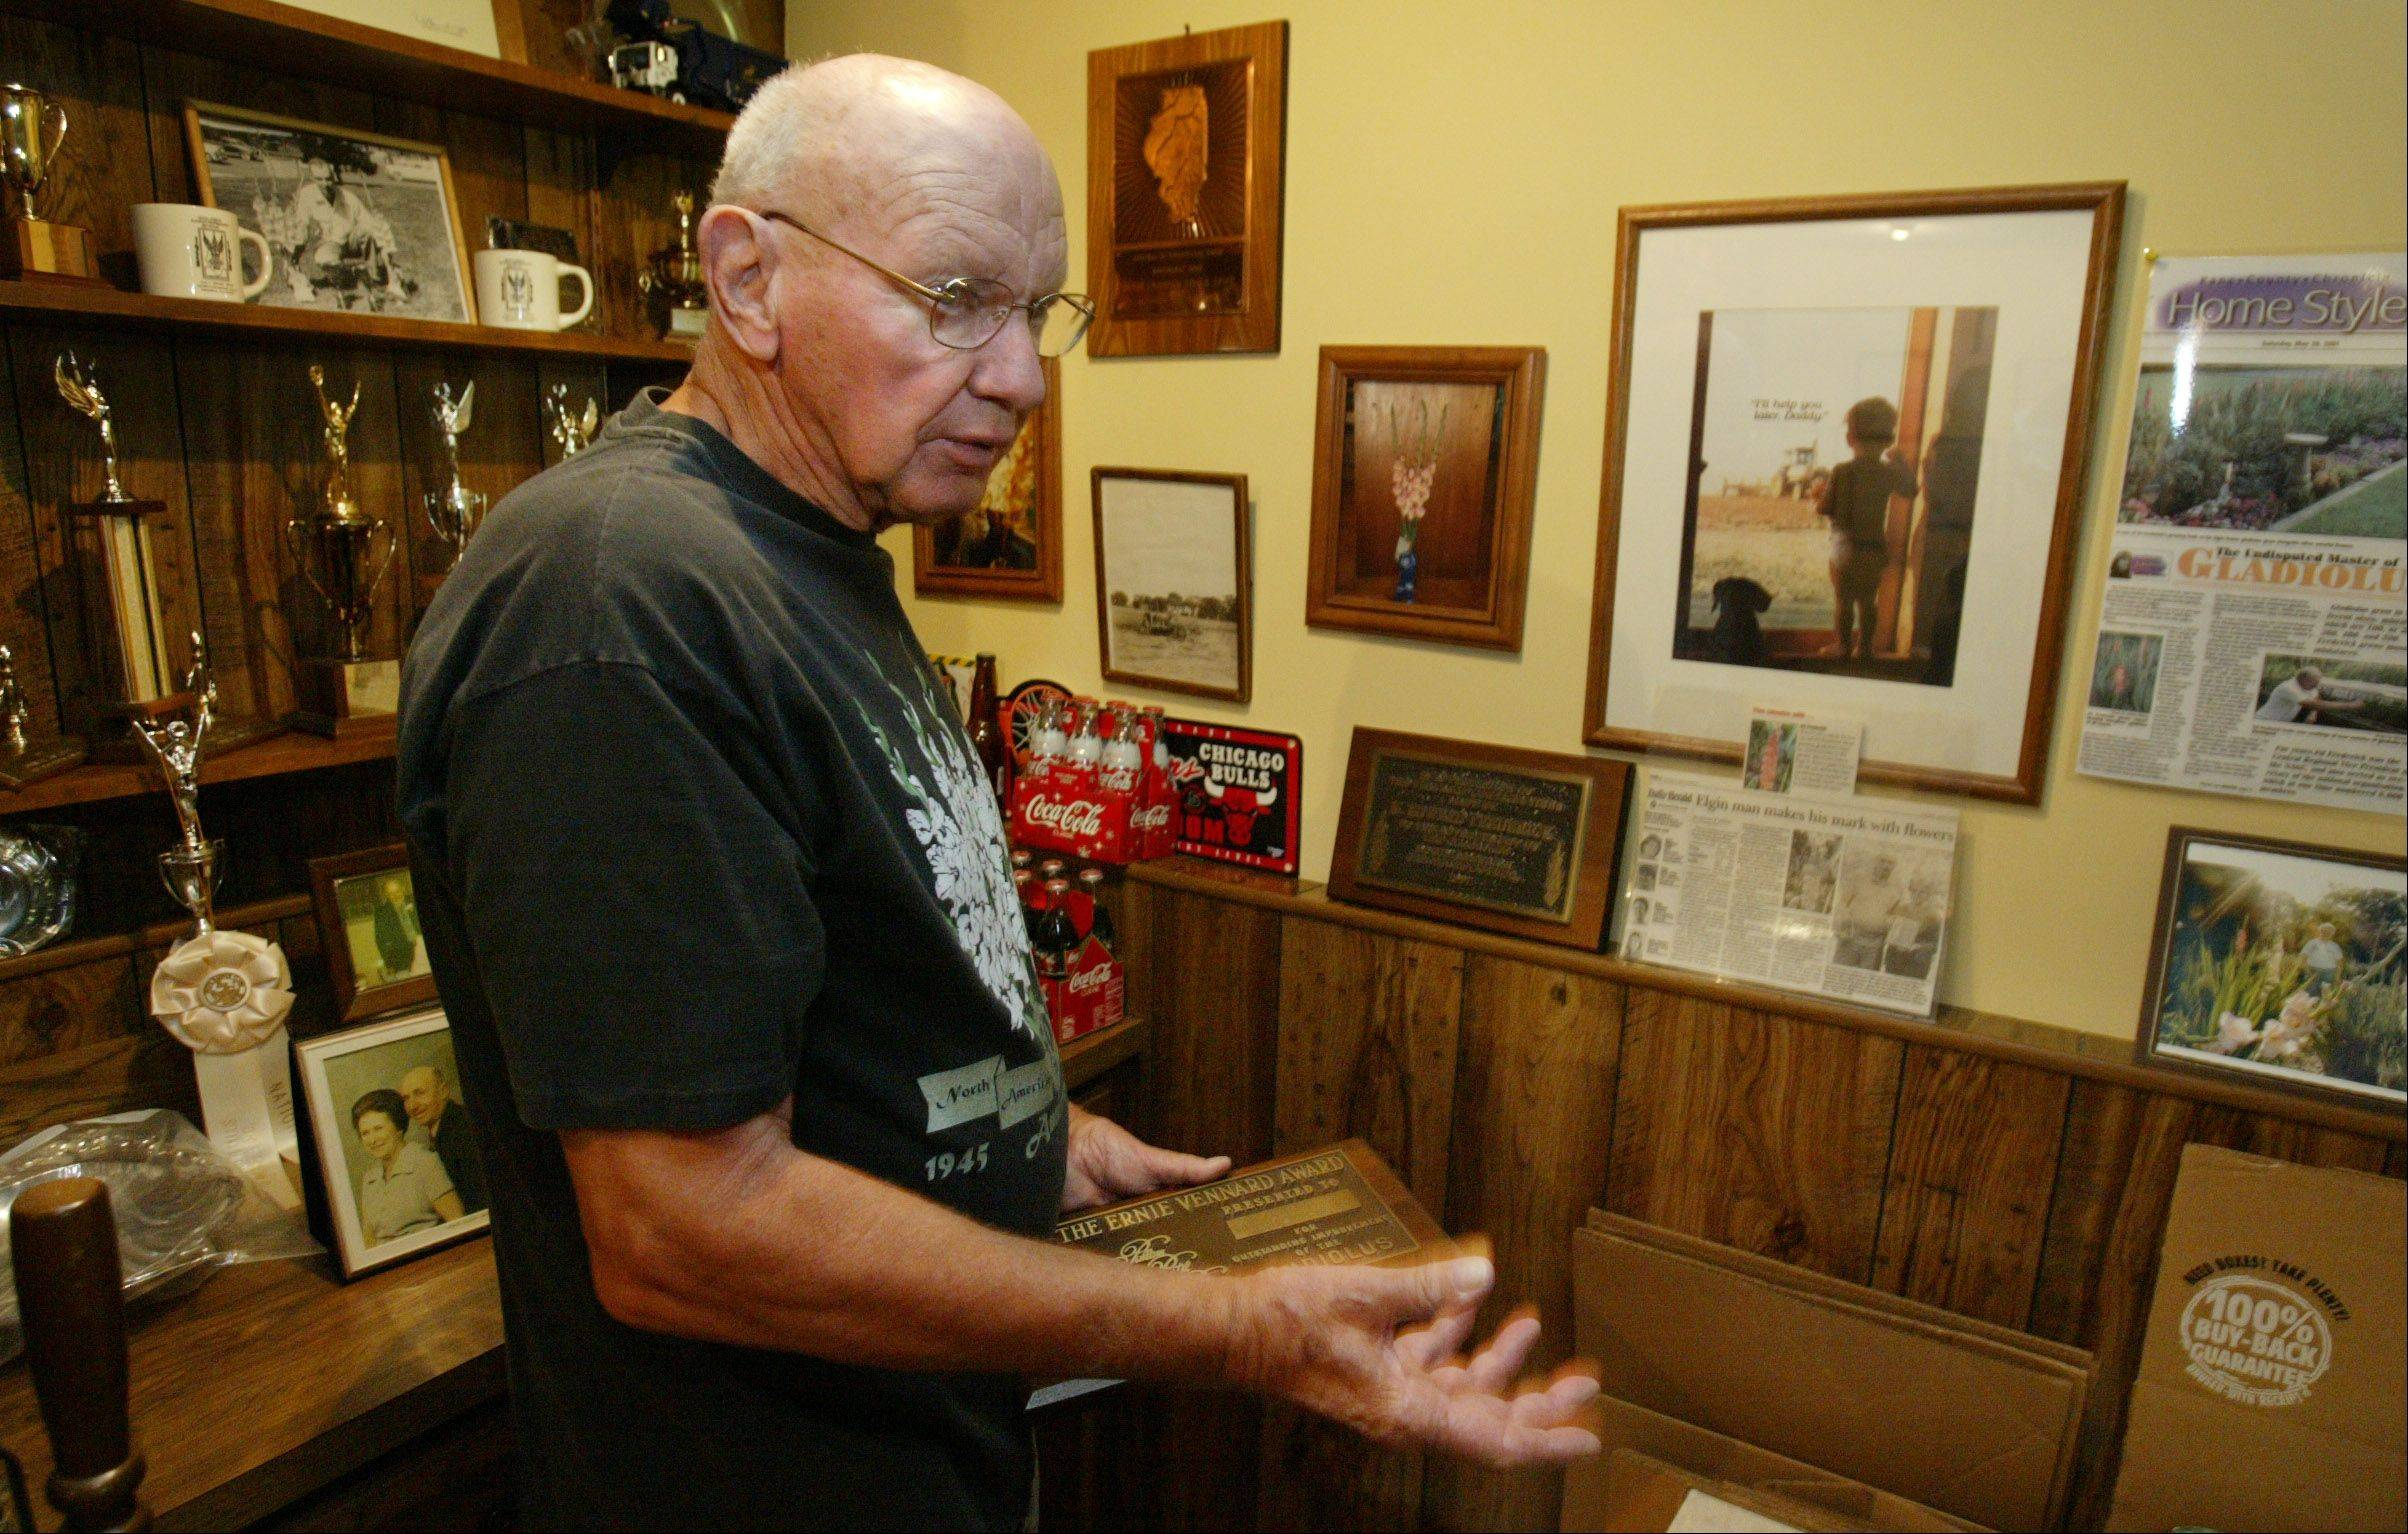 Ed Frederick talks about some of the many awards he has received over the years for his gladiolus. Only a small portion of the plaques and ribbons can be seen here. At 78, he still travels to out-of-state competitions with his gladioluses.